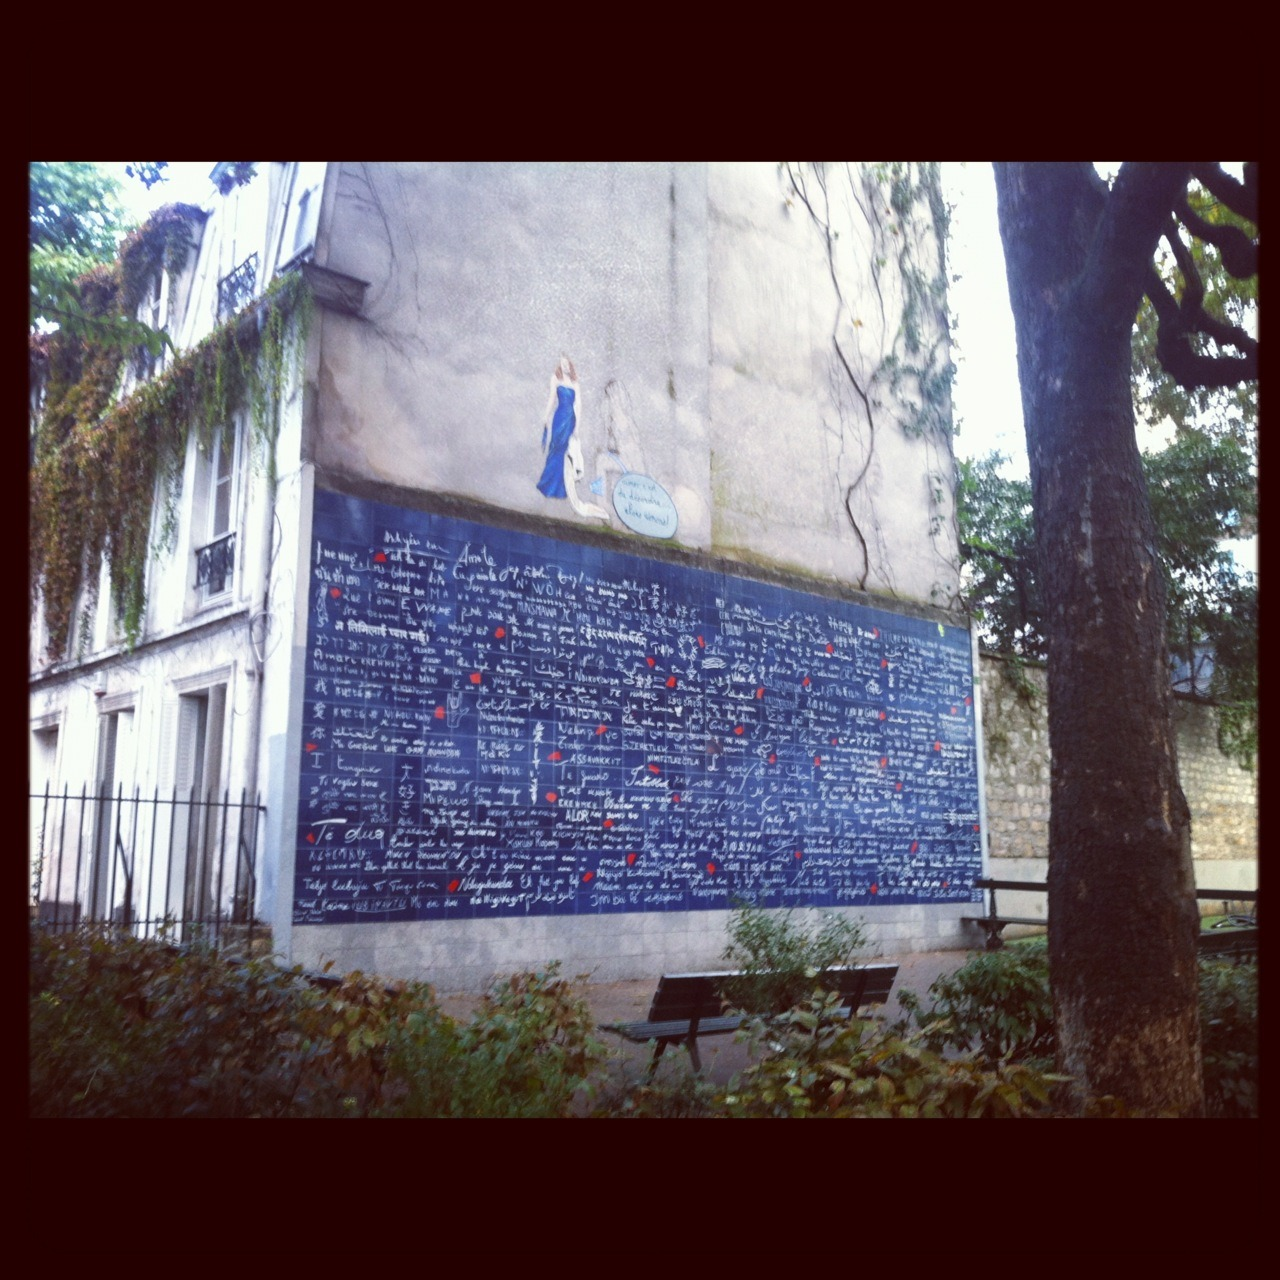 Lovers Wall at Montmartre